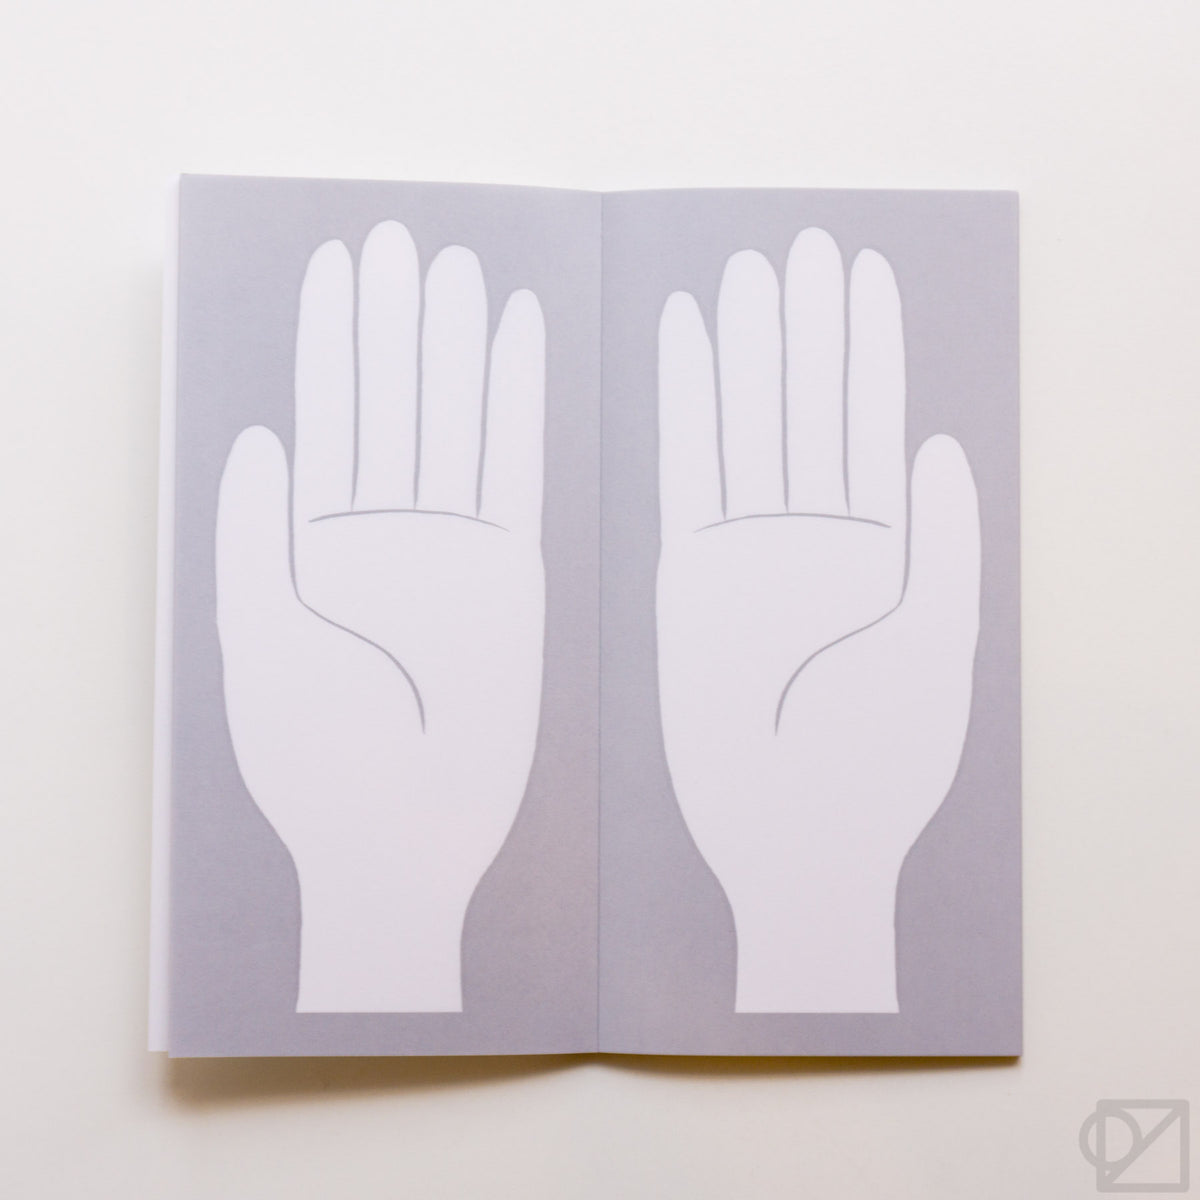 noritake 'Clap Your Hands' Notebook